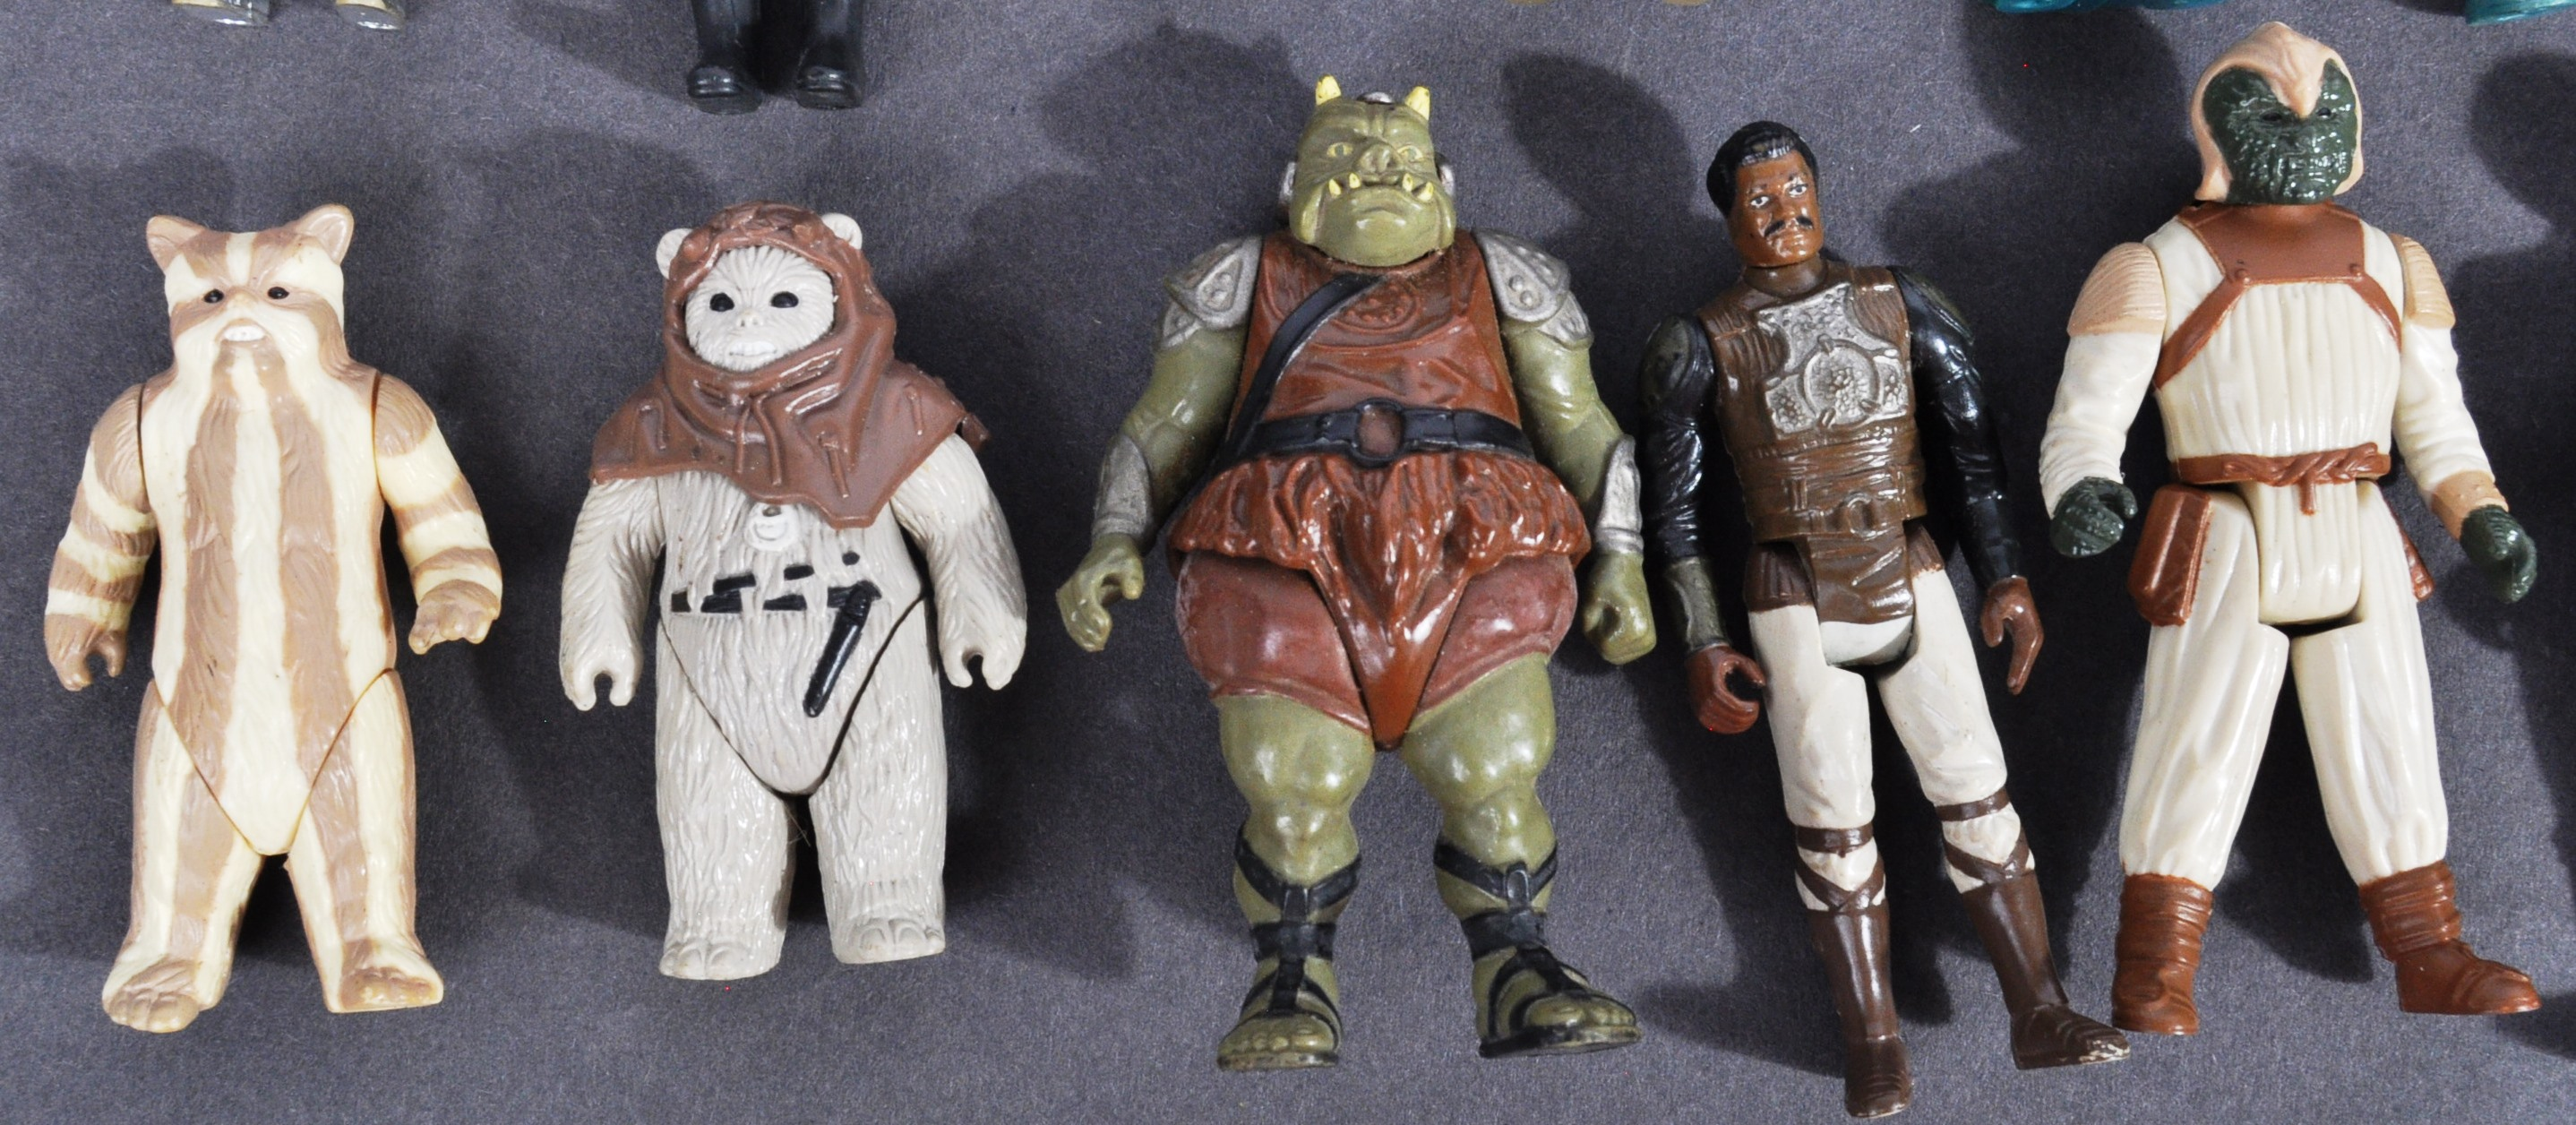 STAR WARS - COLLECTION OF VINTAGE KENNER / PALITOY ACTION FIGURES - Image 3 of 5